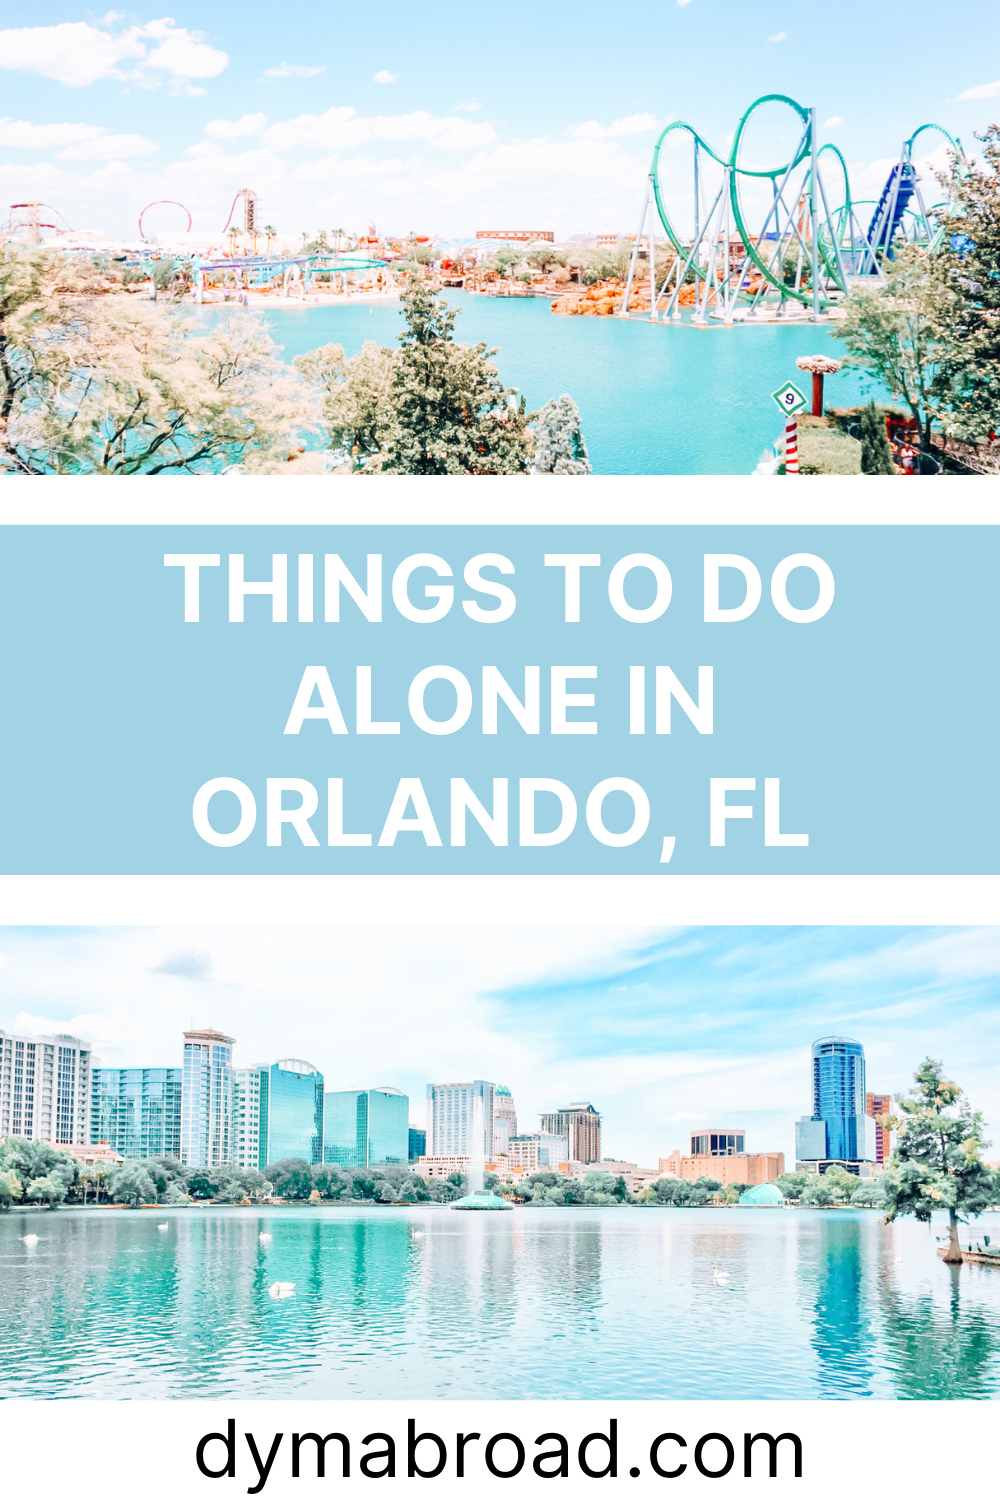 Things to do alone in Orlando Pinterest image